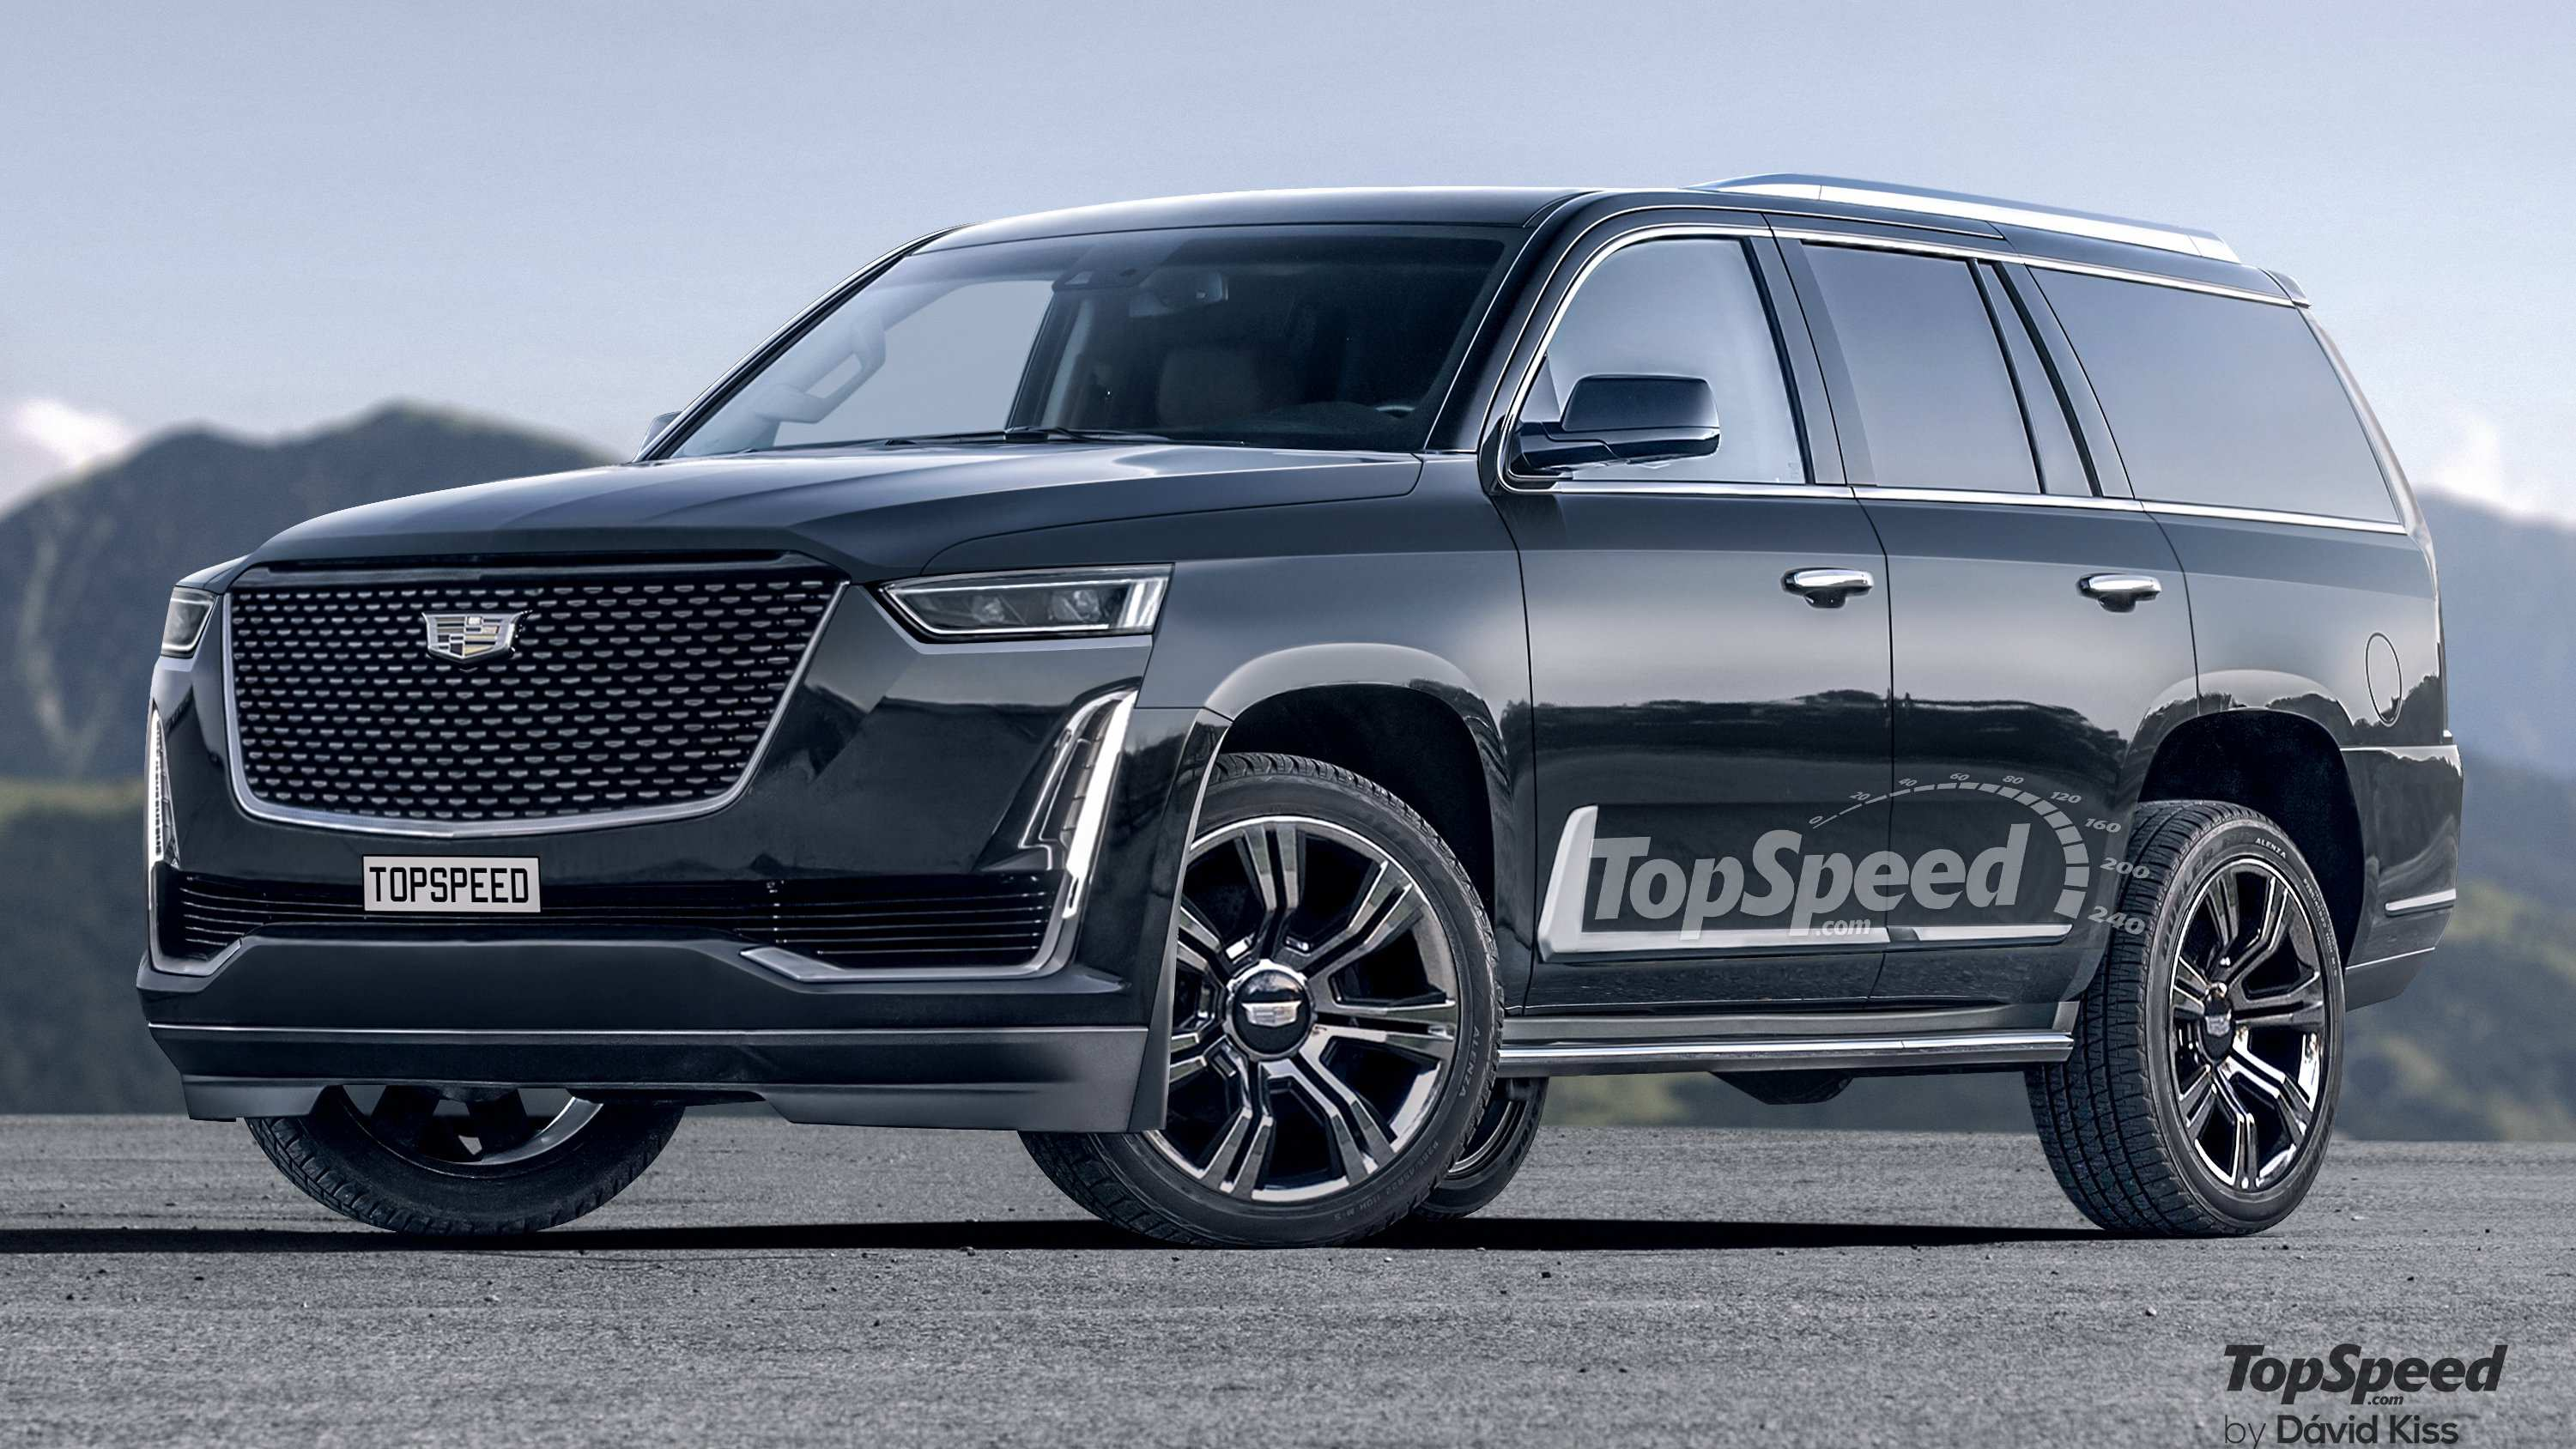 84 Best Review Cadillac Escalade Esv 2020 Prices for Cadillac Escalade Esv 2020